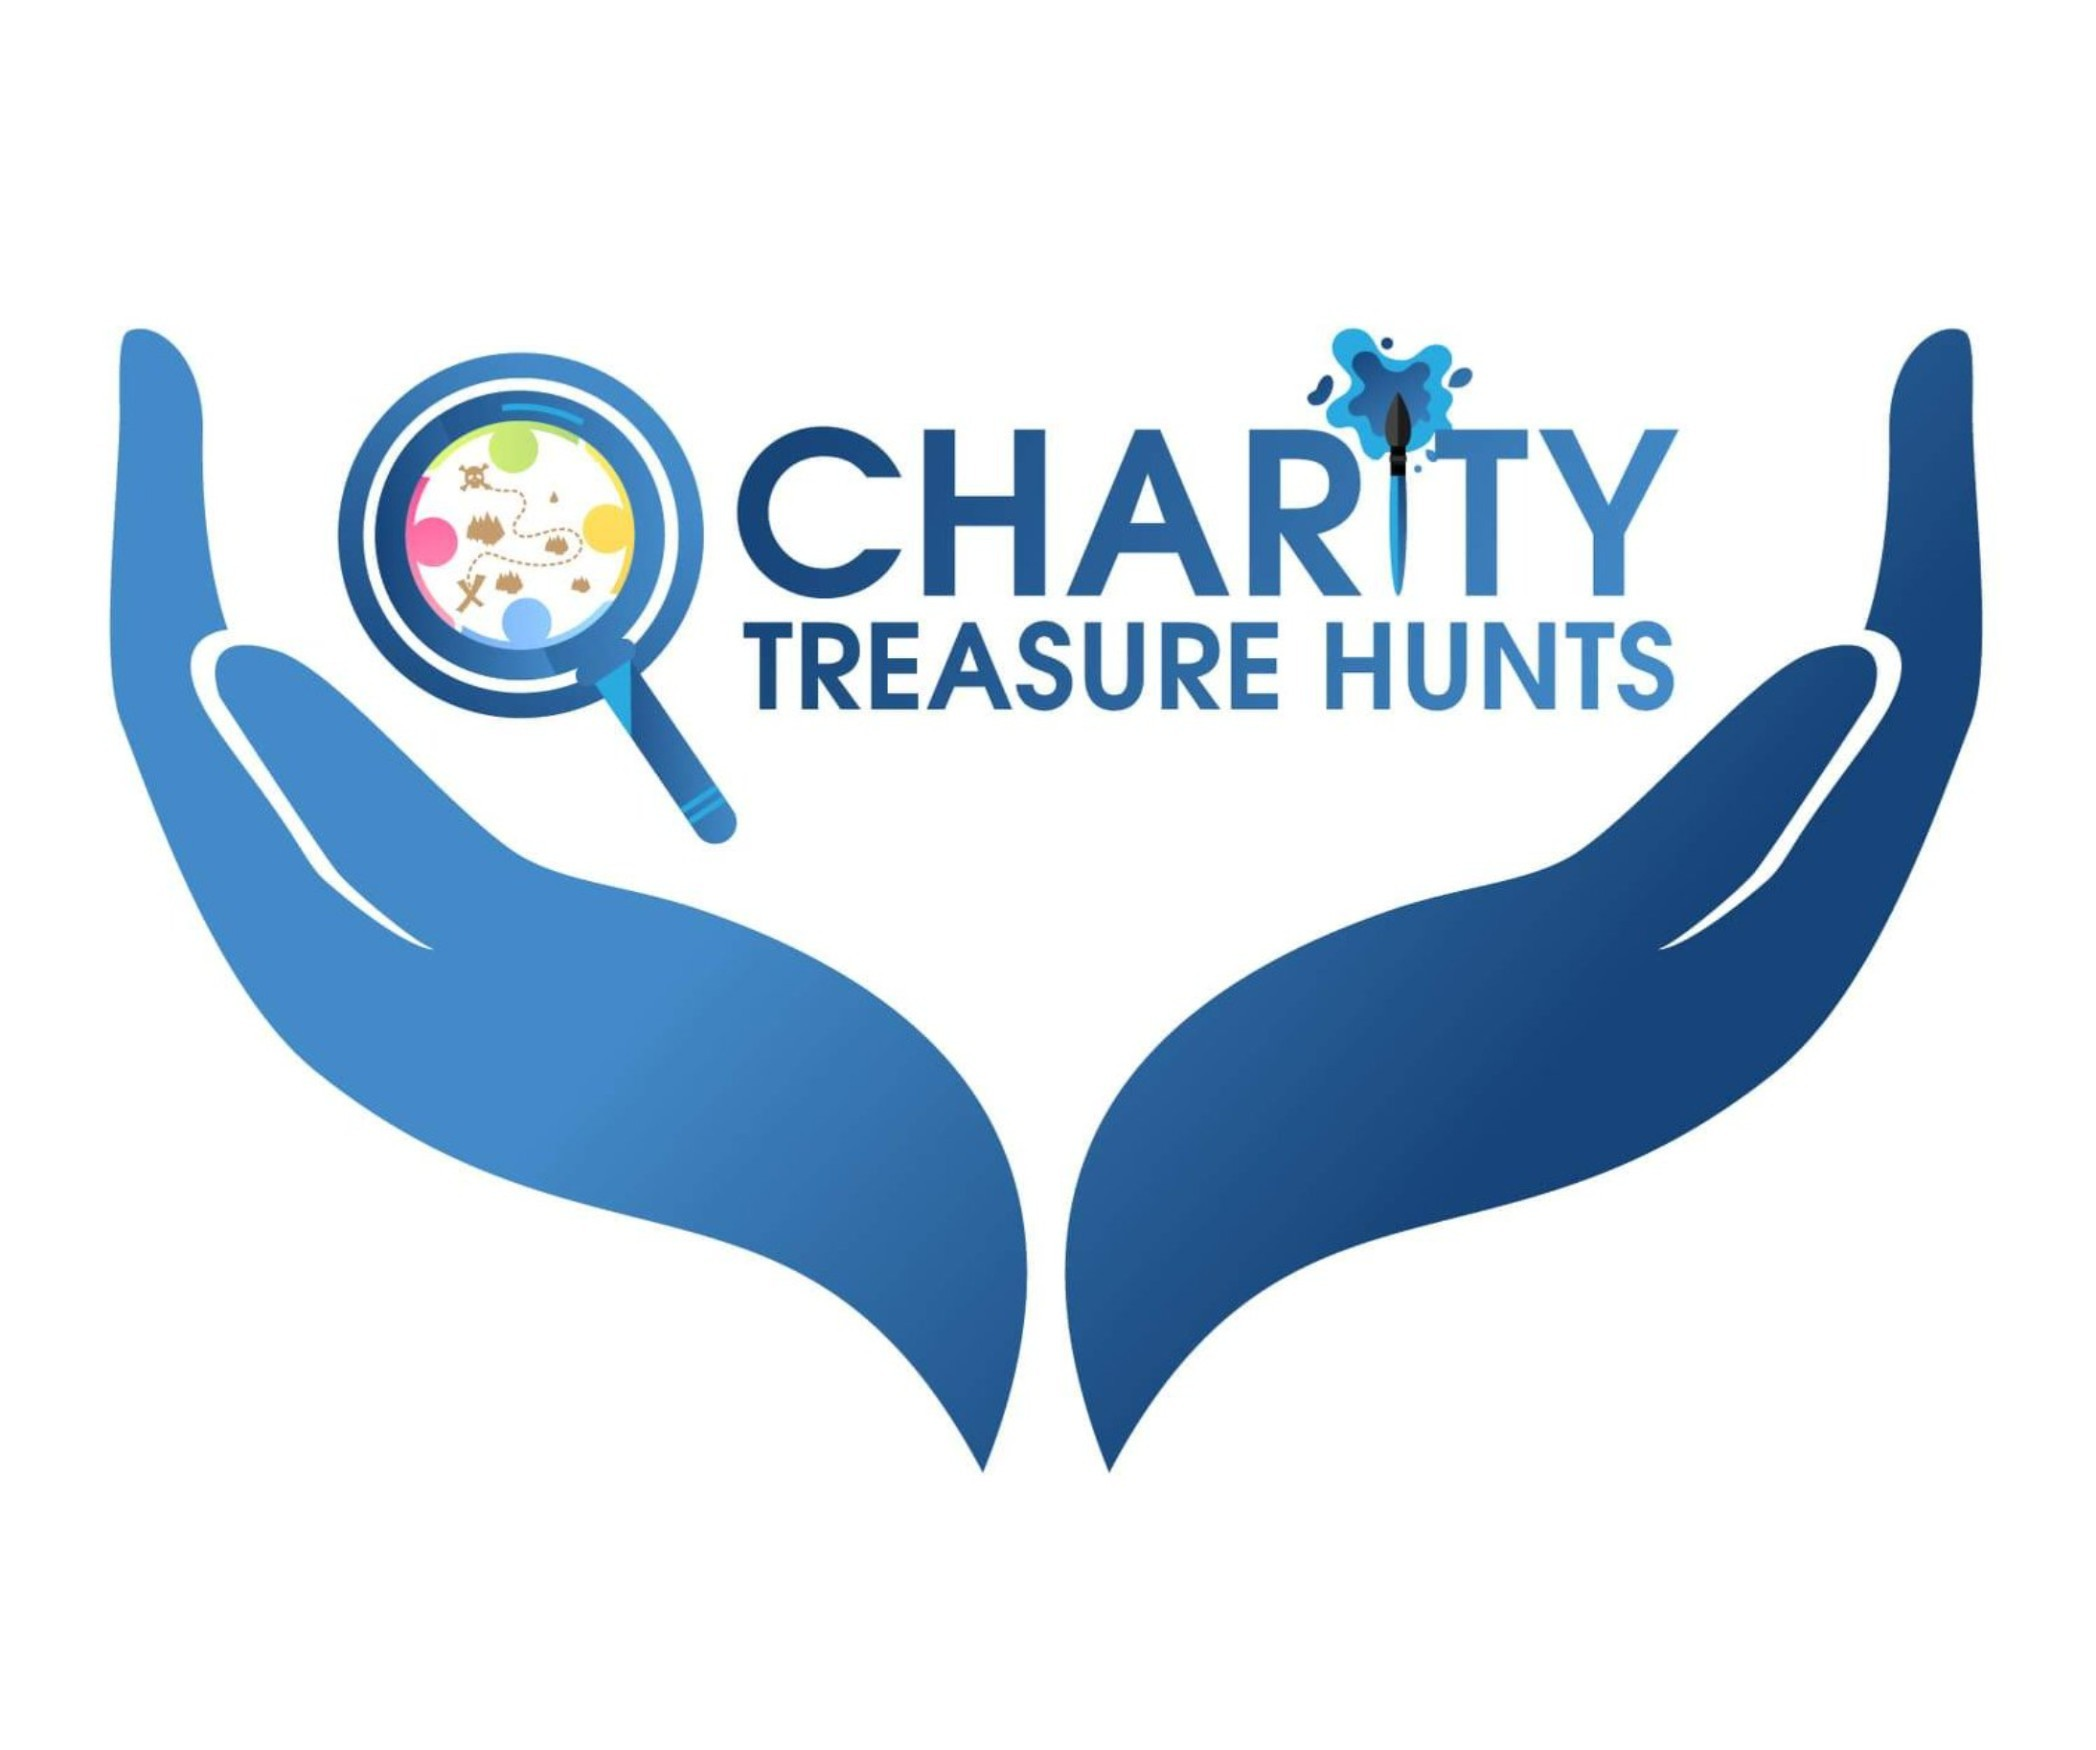 Brad Sanford's Charity Treasure Hunts set to begin a new hunt in August with 70% of all proceeds to be donated To charity